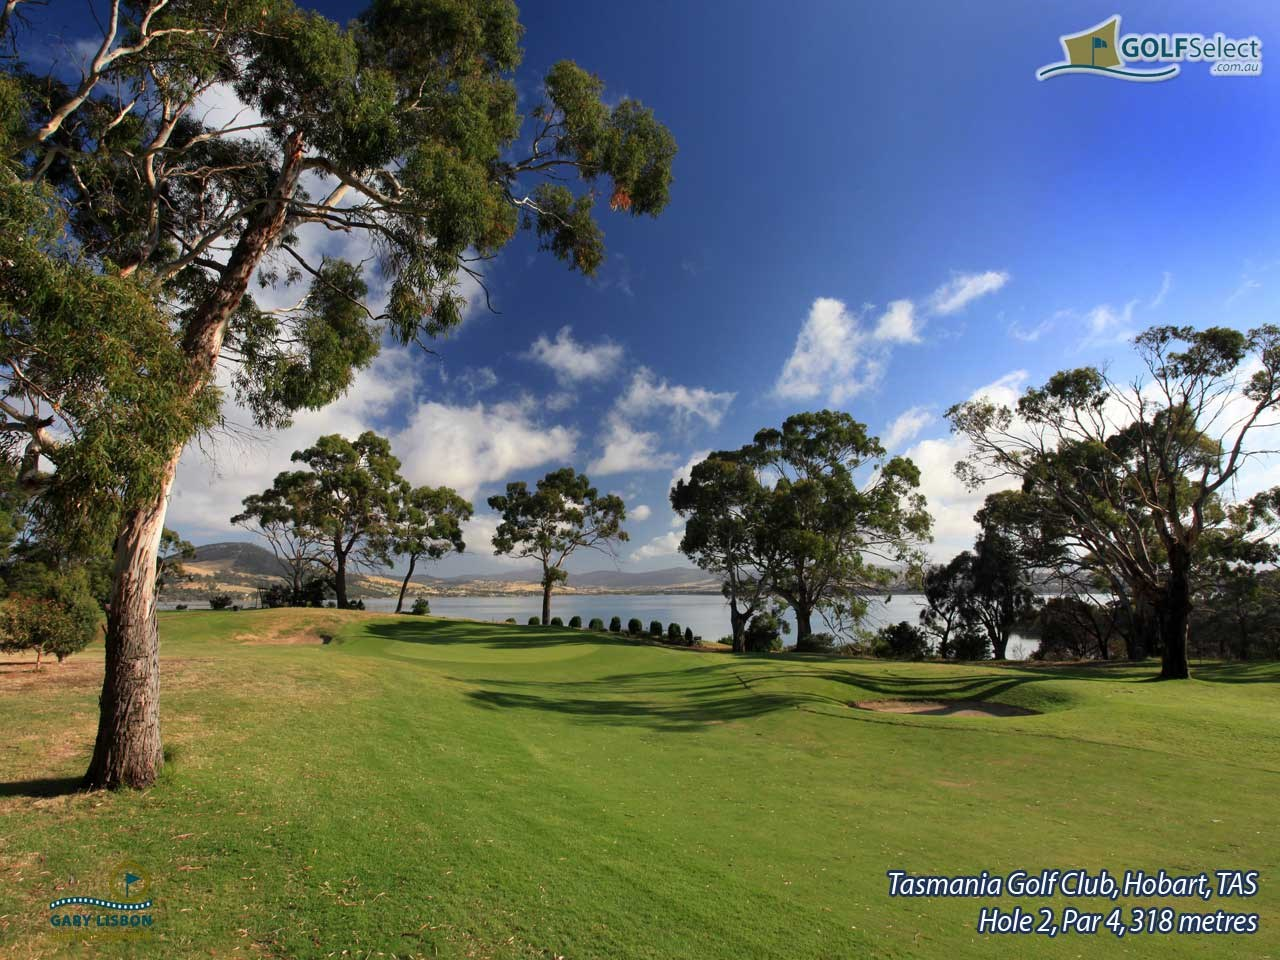 Tasmania Golf Club Hole 2, Par 4, 318 metres